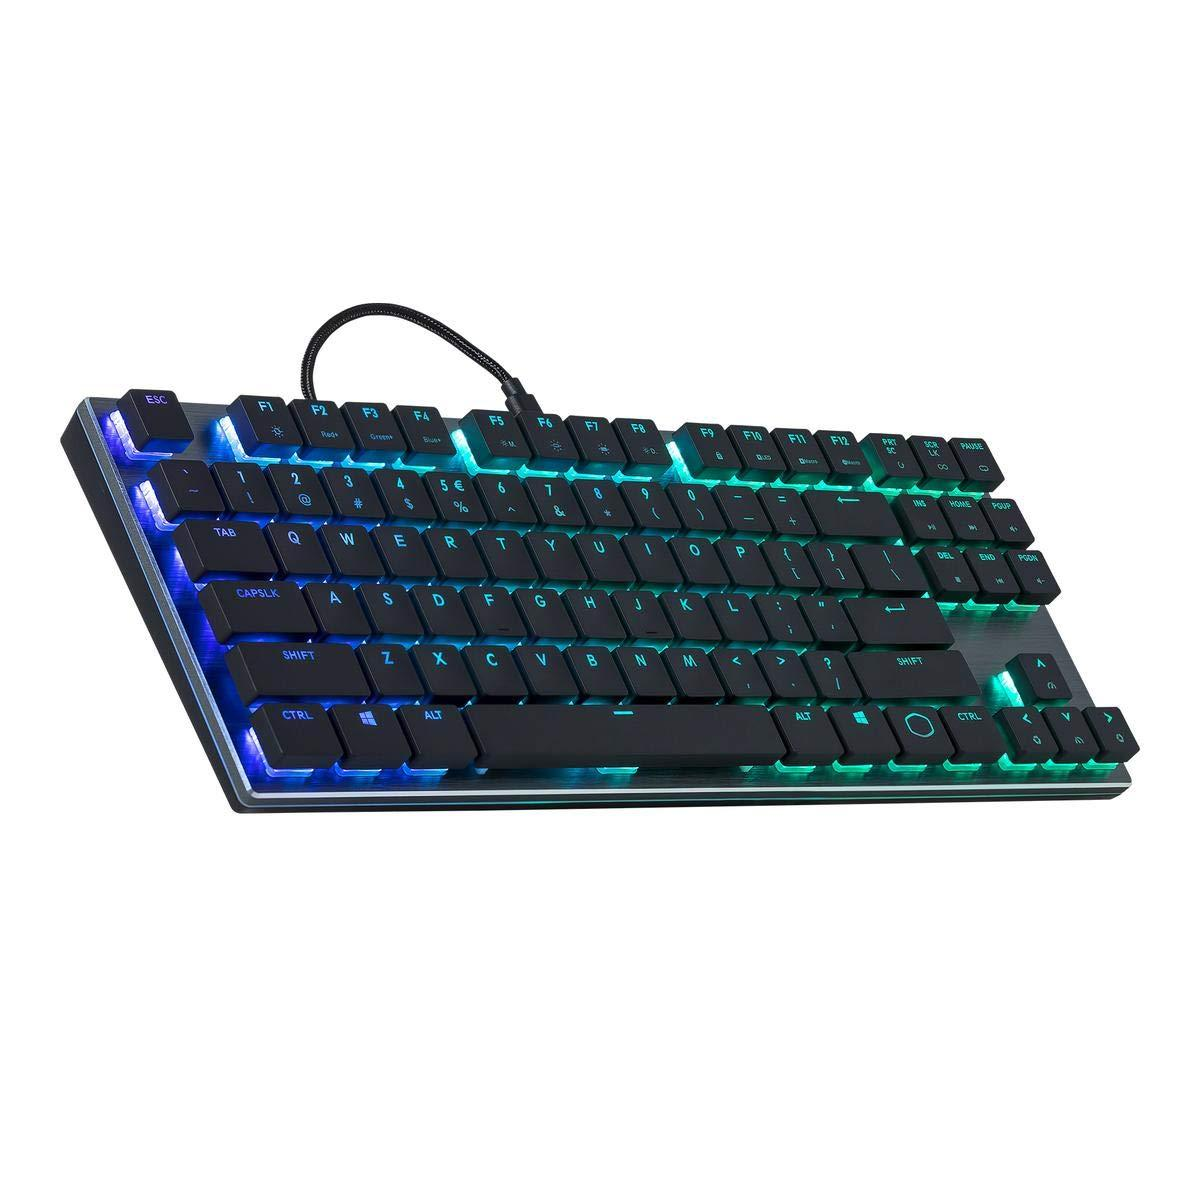 Cooler Master MK630 RGB TKL Mechanical Keyboard Cherry MX Low Profile Switch CoolerMaster Singapore